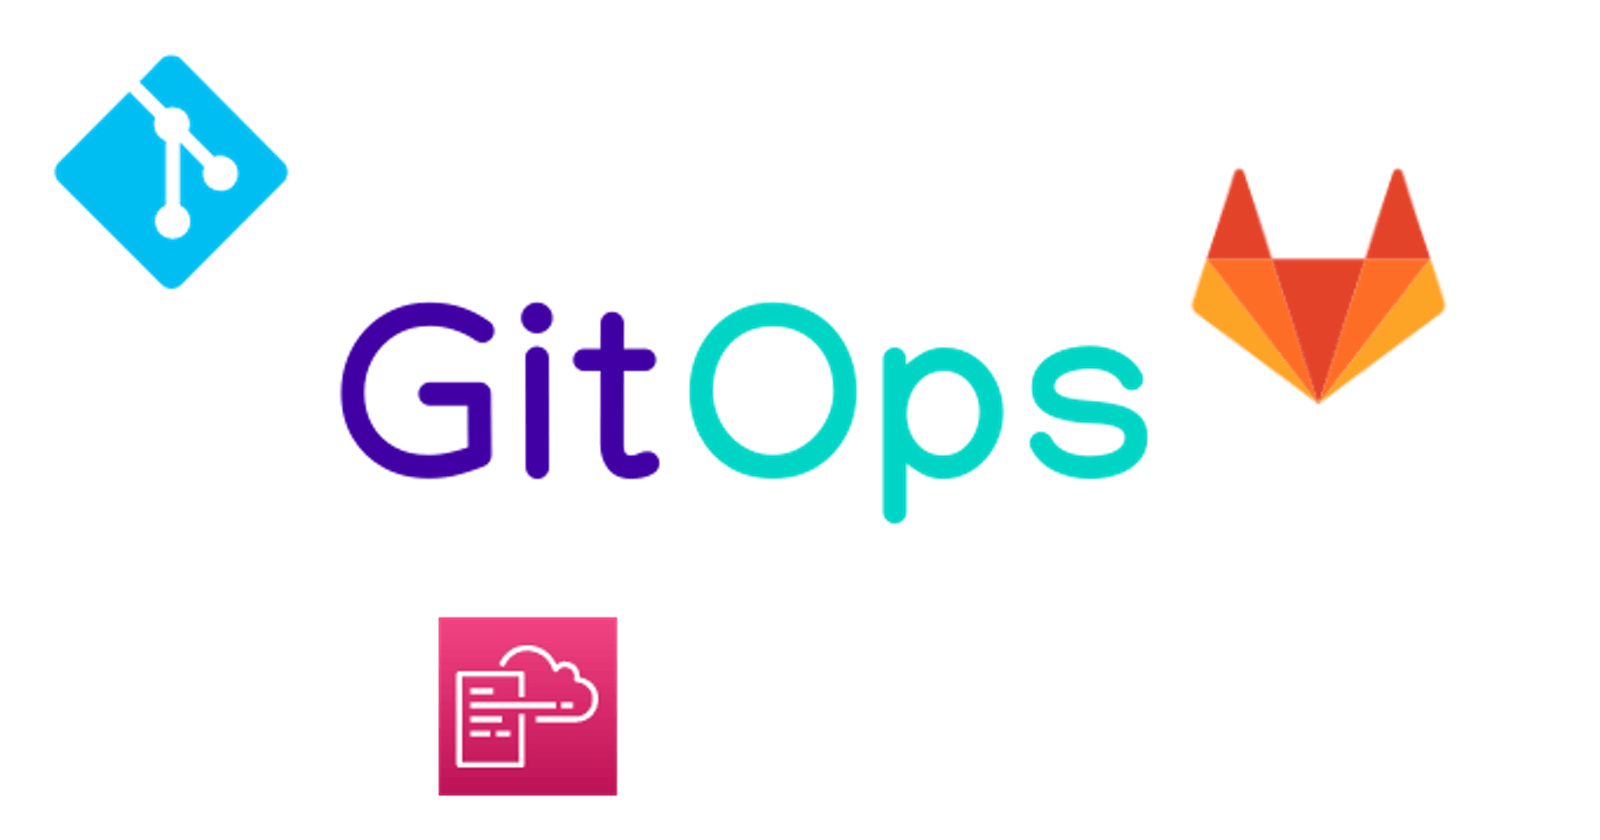 GitOps implementation using GitLabCI and AWS